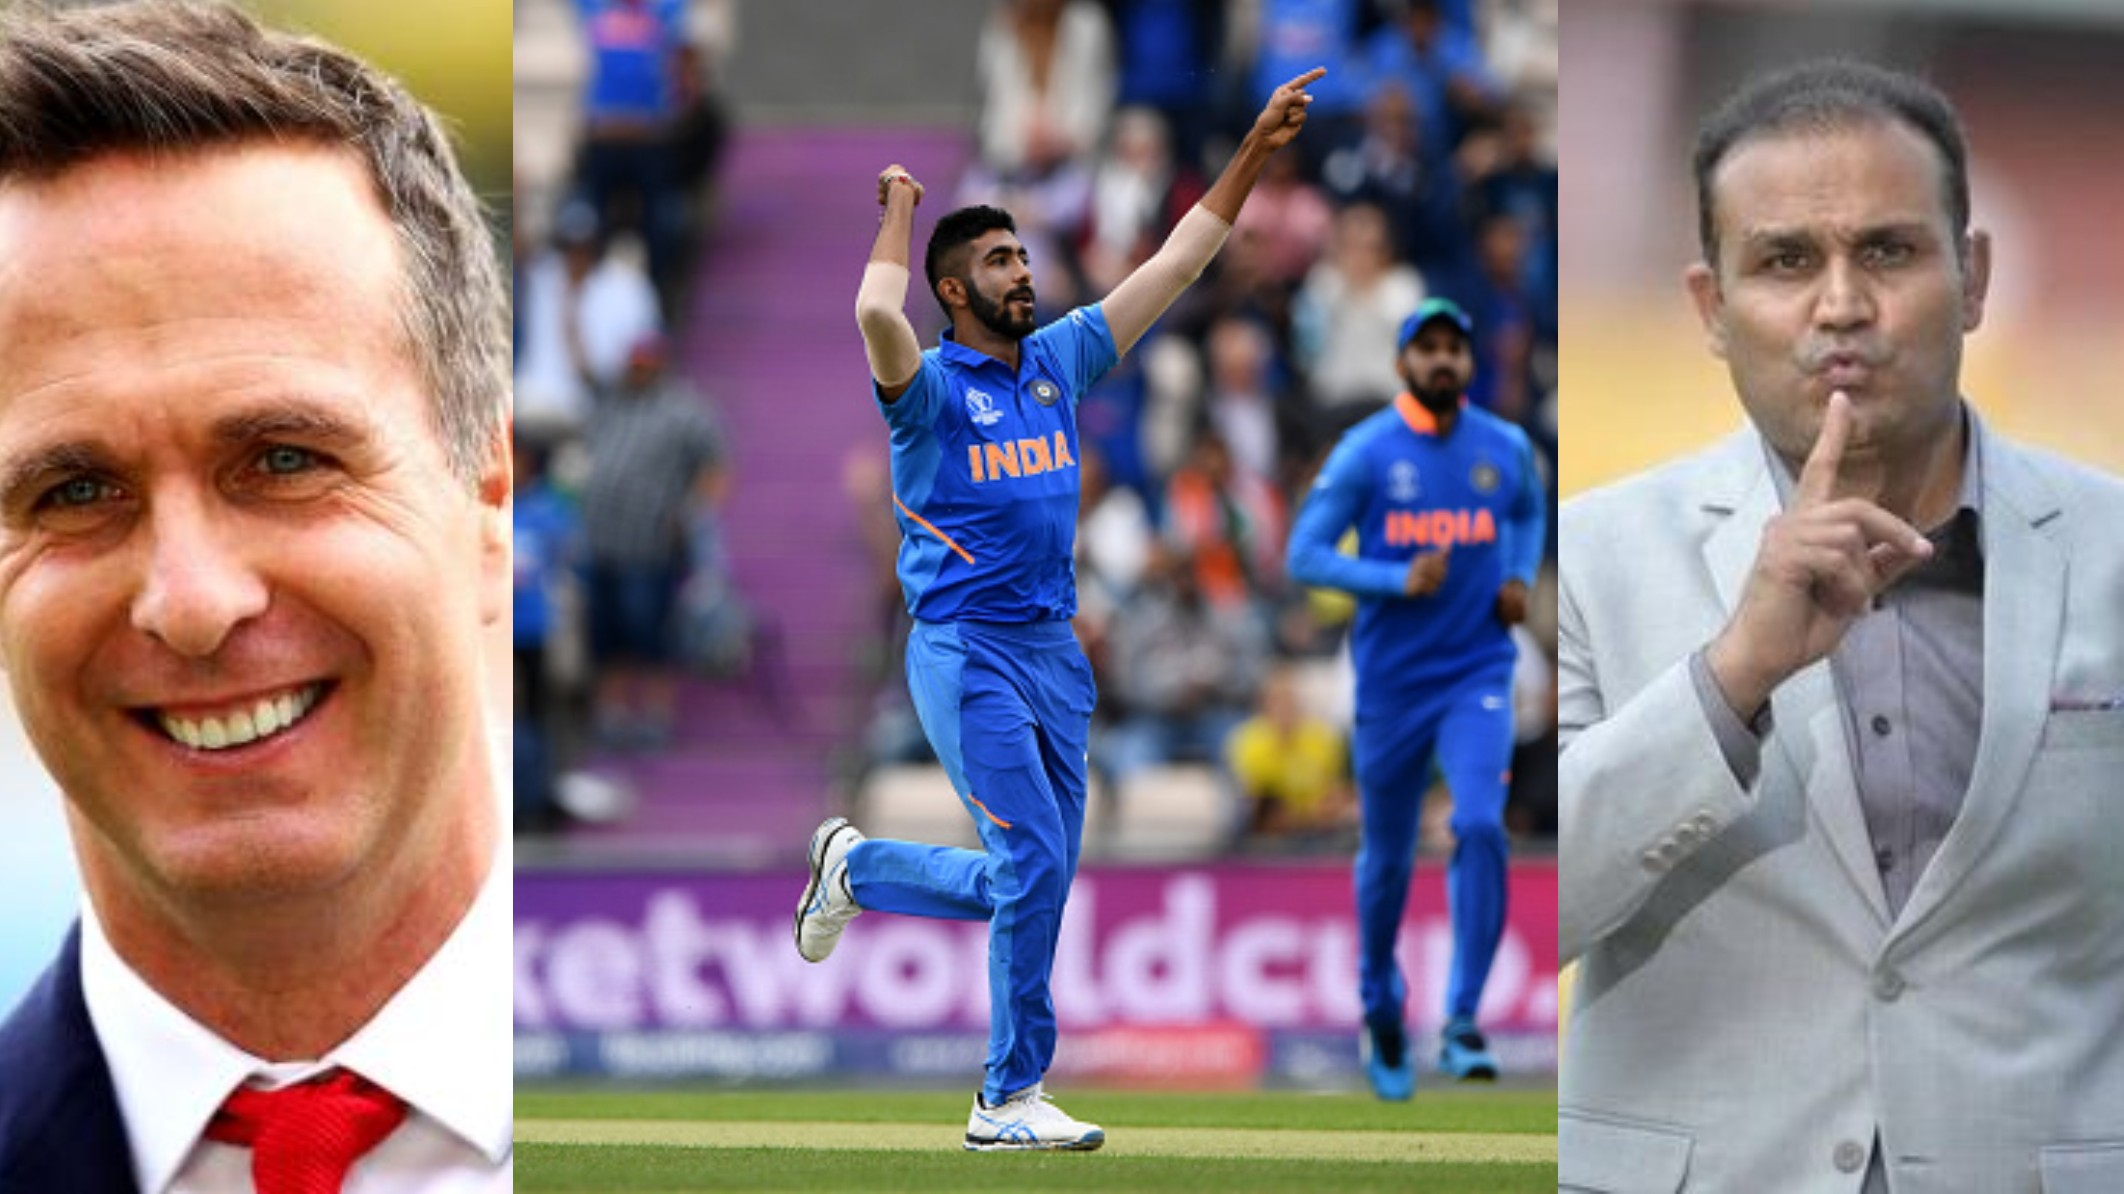 CWC 2019: SA v IND – Cricket fraternity lauds Jasprit Bumrah, as he removes Amla and De Kock early